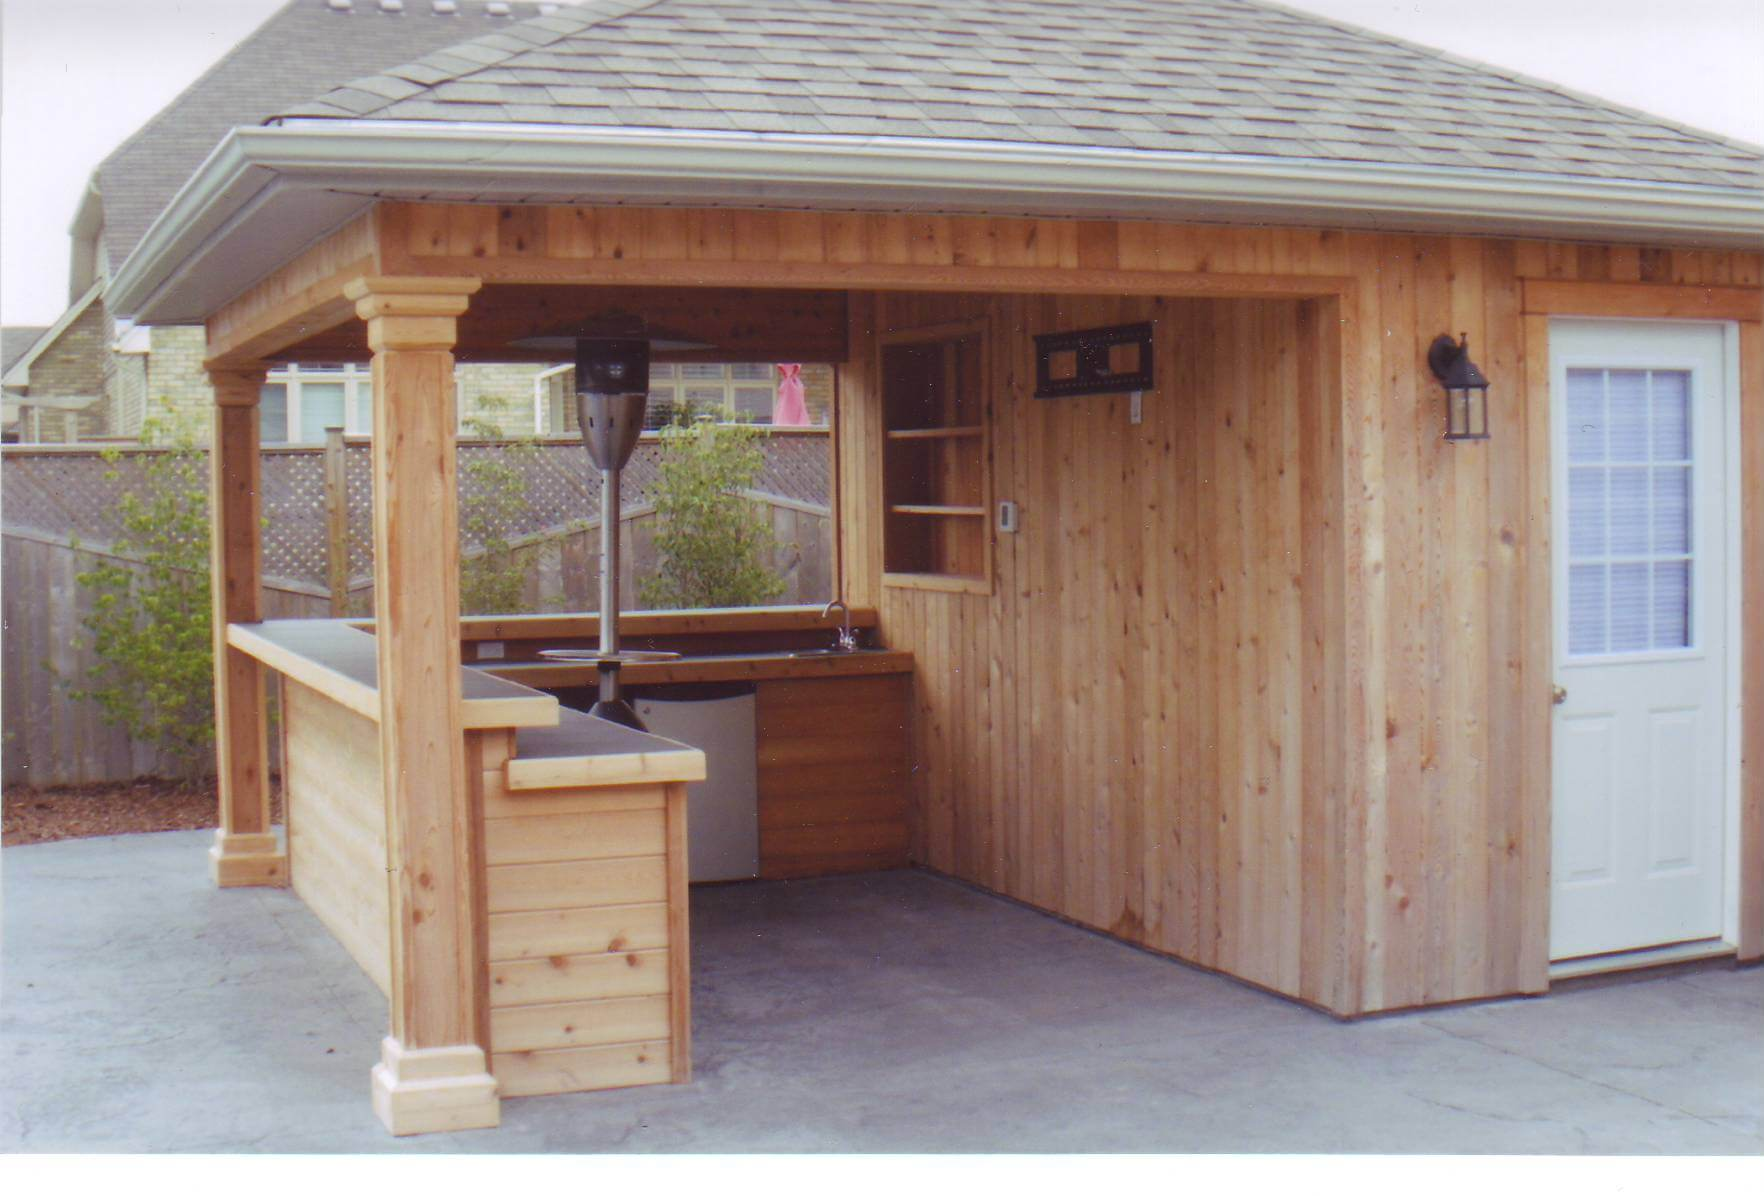 Backyard Bar Shed Ideas | Build a Pub Shed | Backyard ...